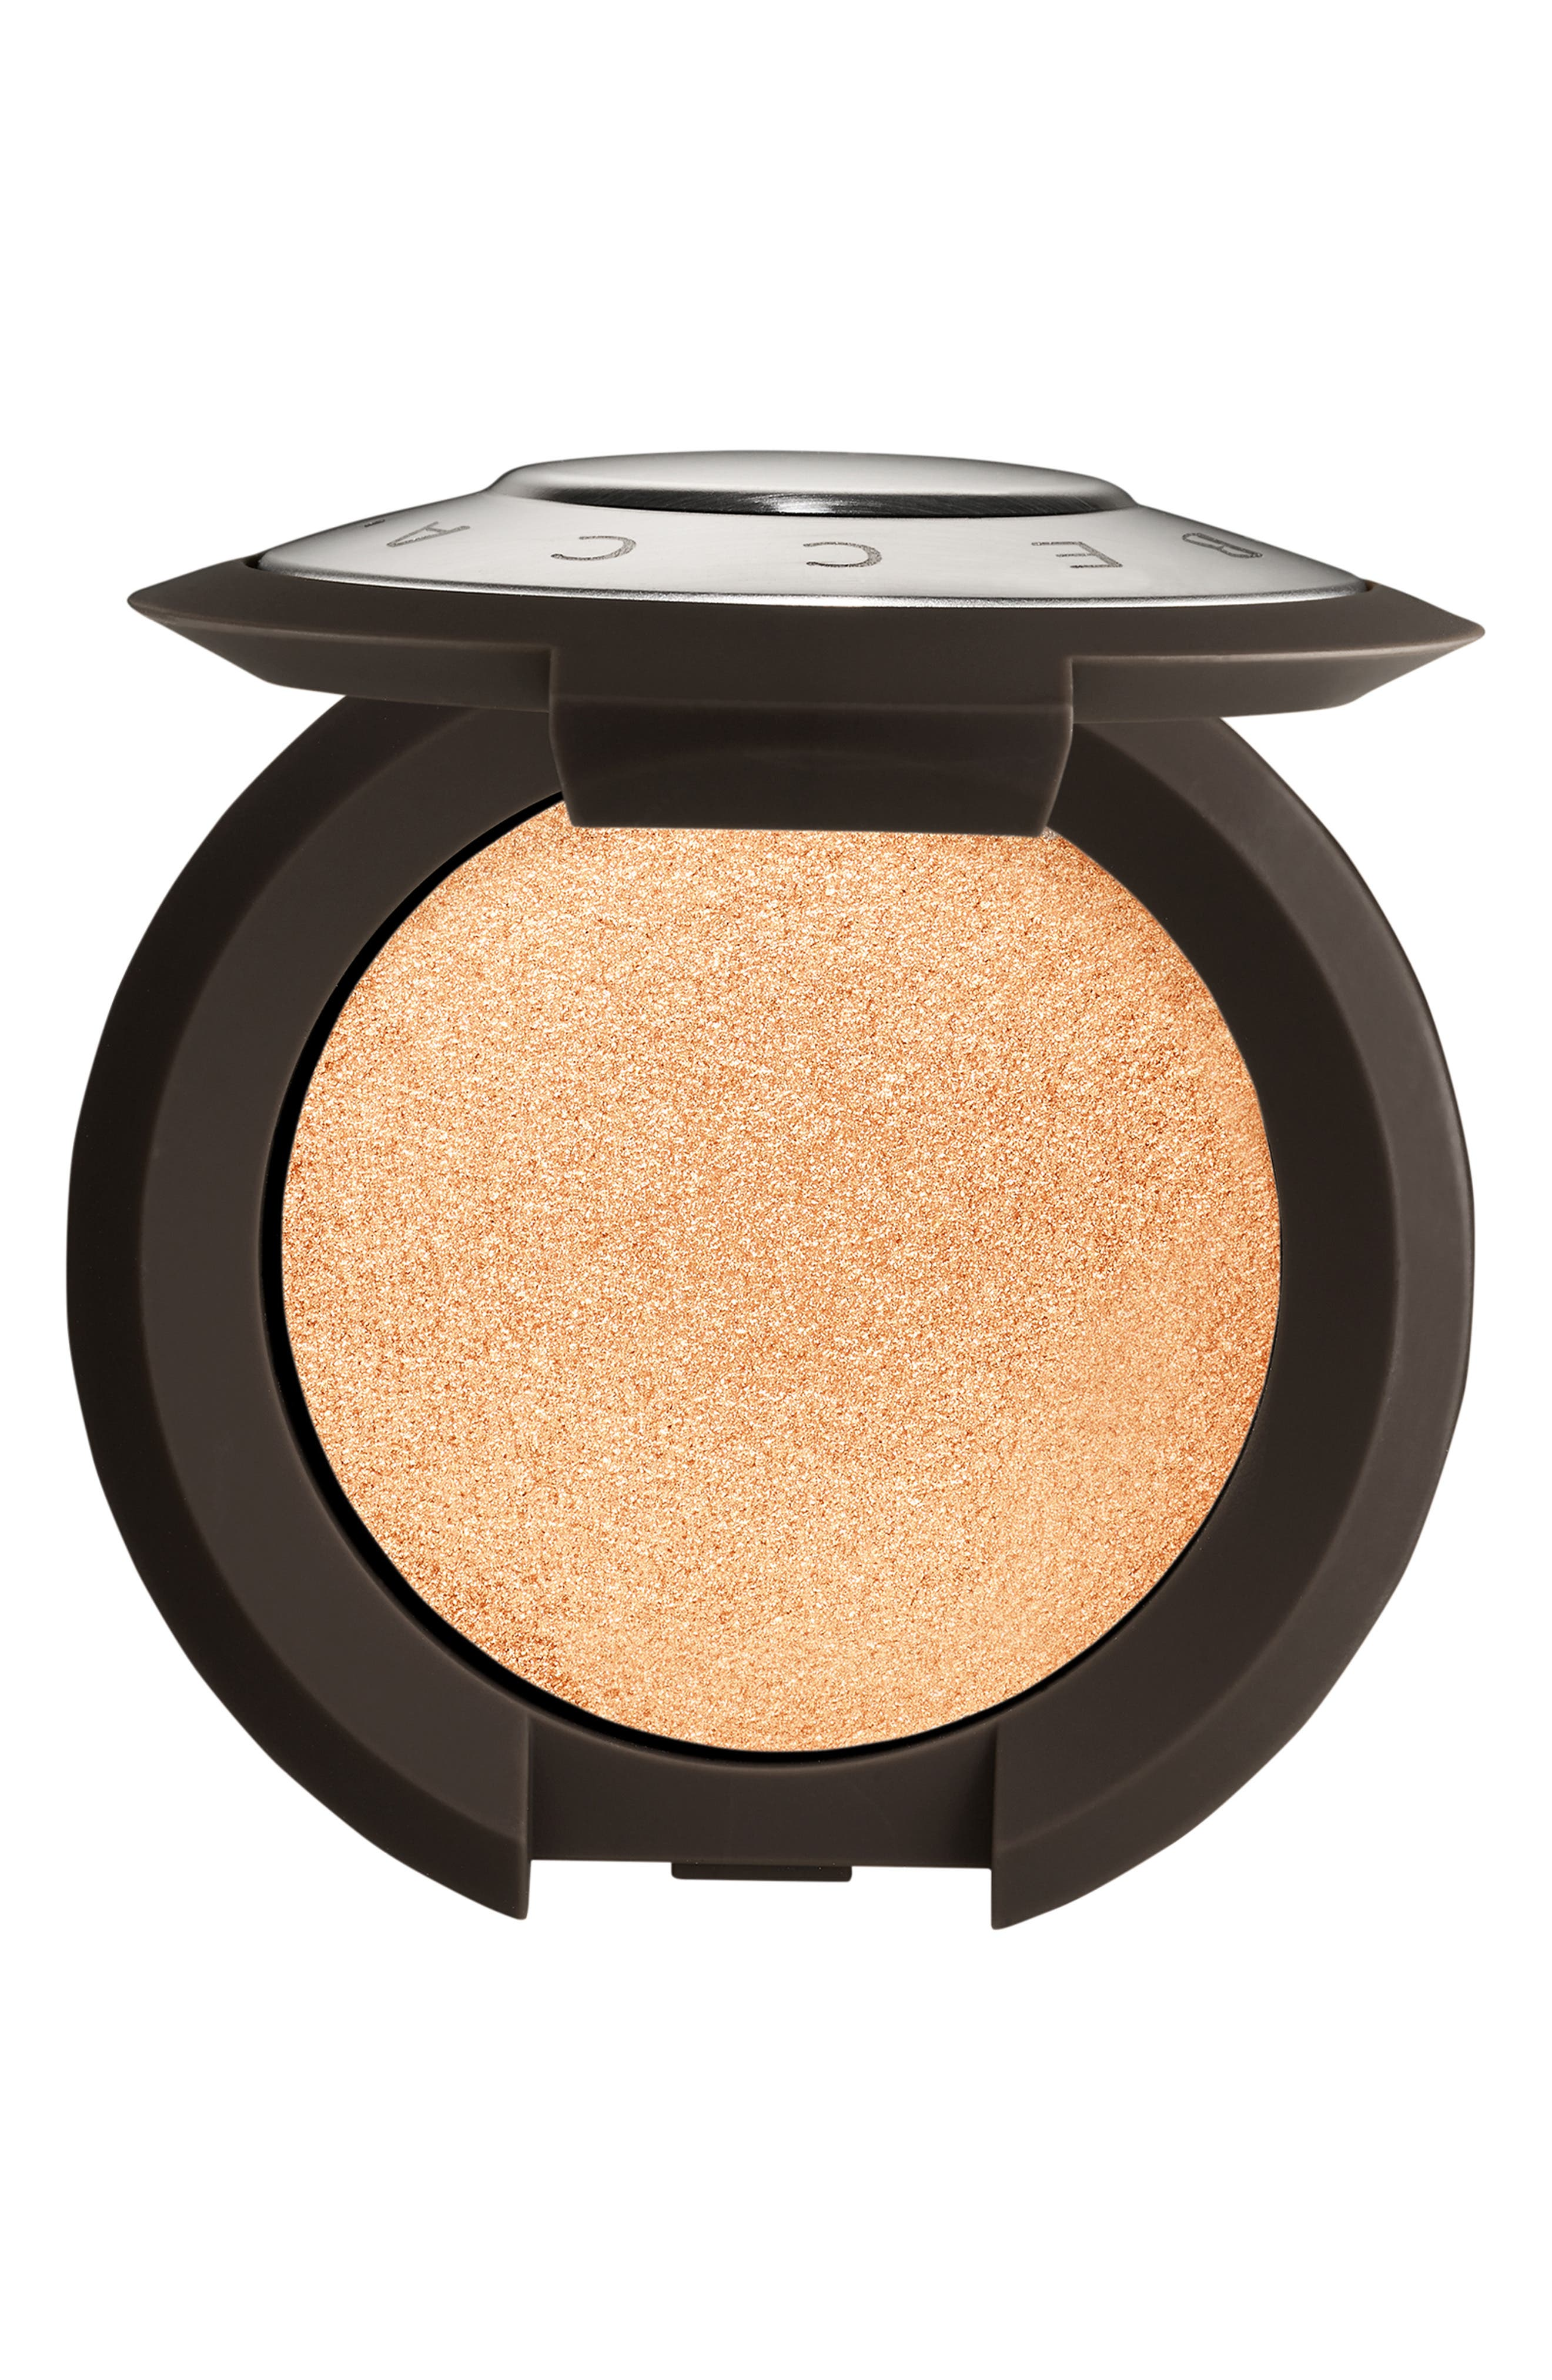 BECCA COSMETICS,                             BECCA Shimmering Skin Perfector Pressed Highlighter,                             Main thumbnail 1, color,                             CHAMPAGNE POP / MINI